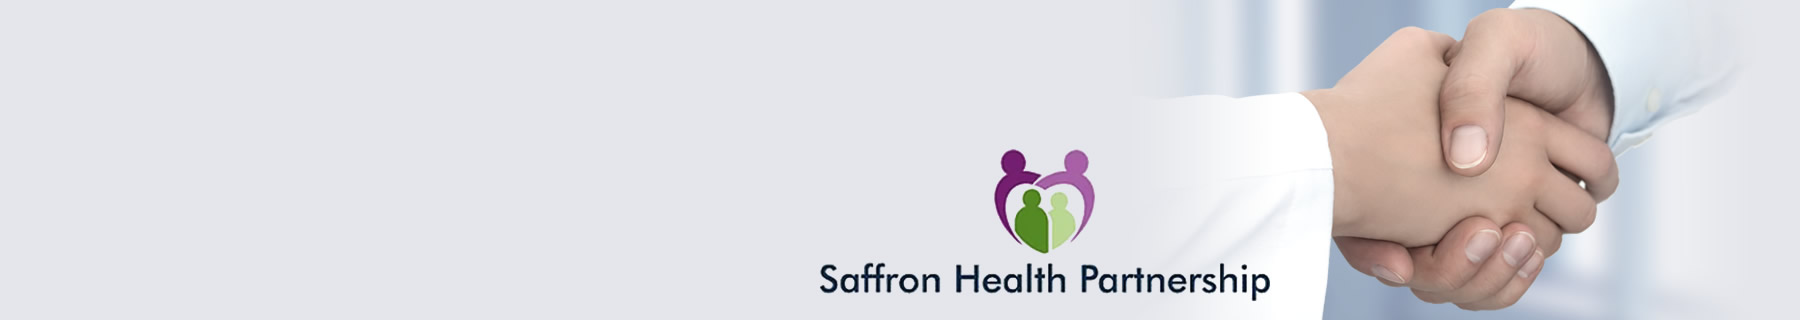 Saffron Health Partnership wanted reliable call recording with a back-end solution allowing them to make practical use of real-time call statistics